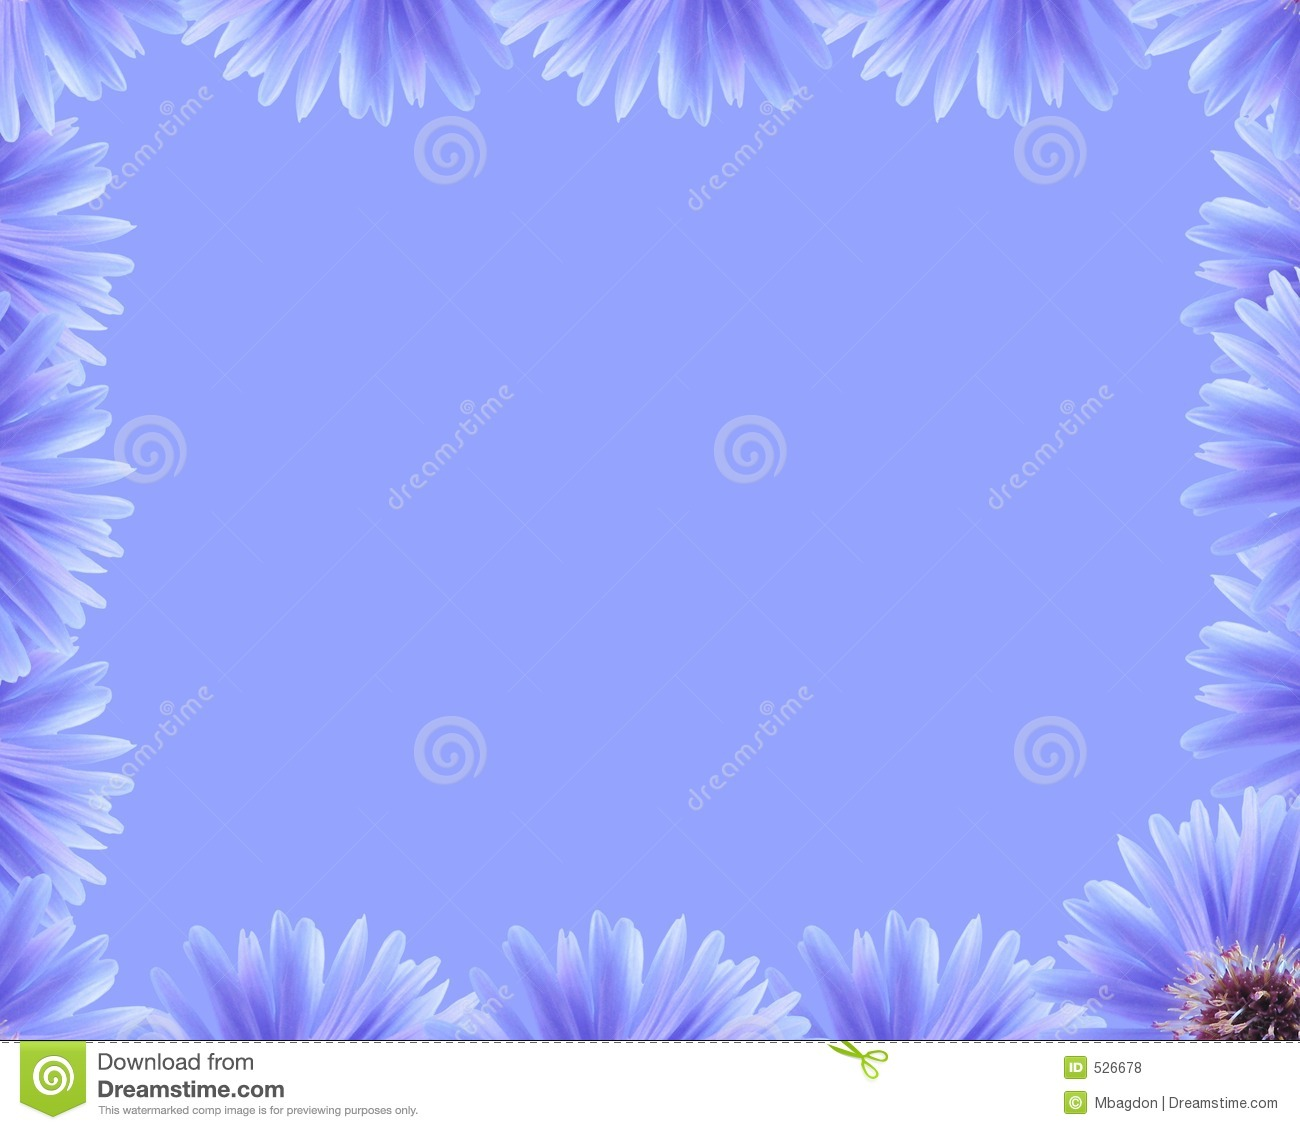 Purple Flower Border Royalty Free Stock Photos - Image: 526678: www.dreamstime.com/royalty-free-stock-photos-purple-flower-border...